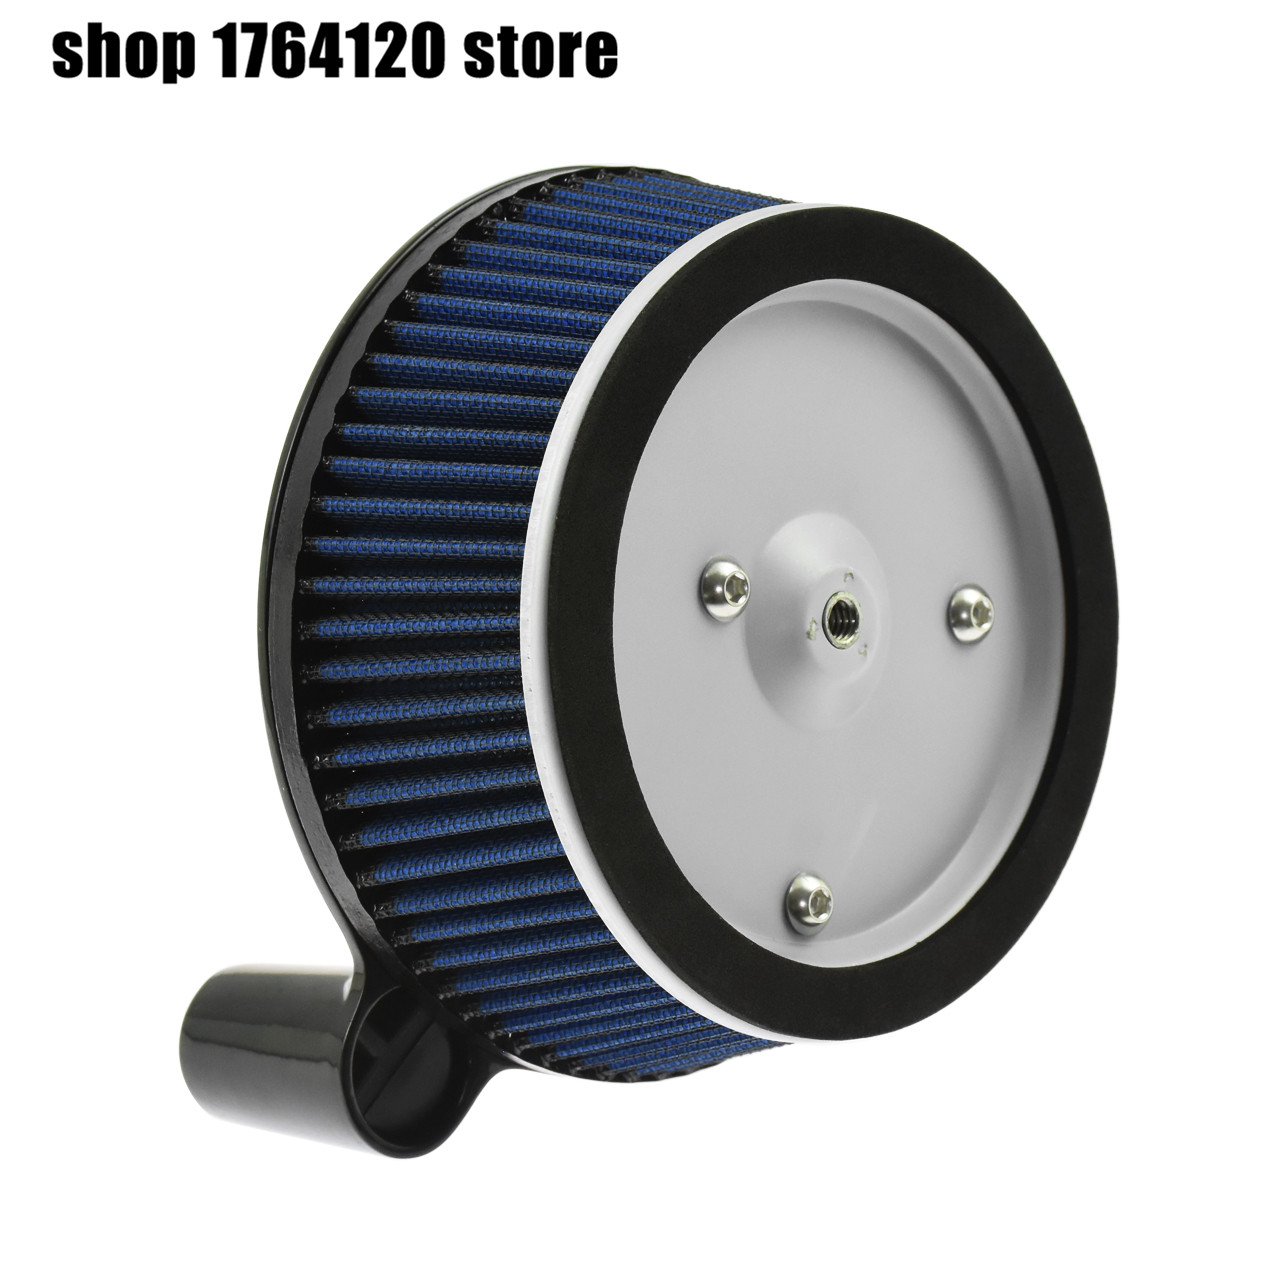 Motorcycle Air Filter System Blue Cleaner Aluminum For Harley Touring Street Glide Road Glide 2000-2007 Dyna 00-17 Softail 00-15 image